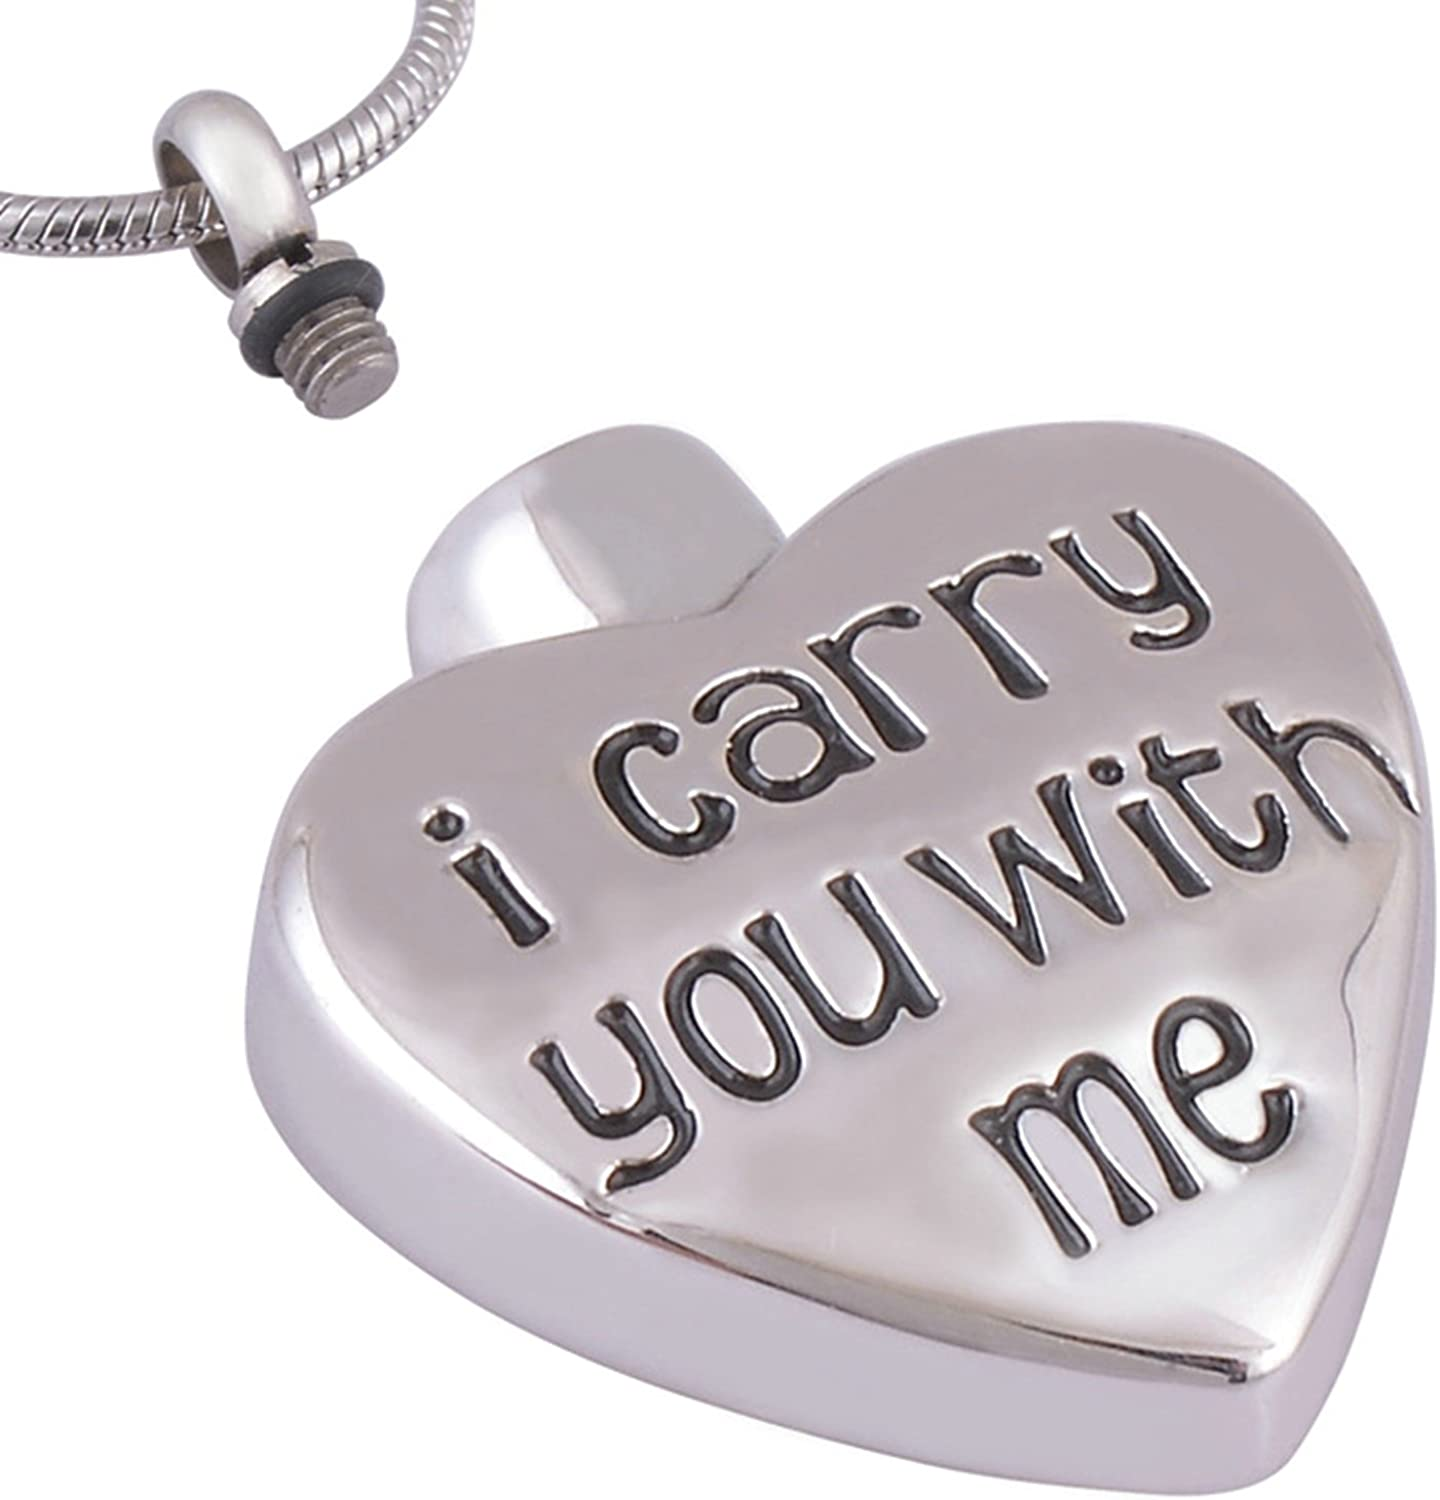 Bishilin Stainless Steel Silver I Carry You With Me Heart Tag Cremation Memorial Urn Necklaces